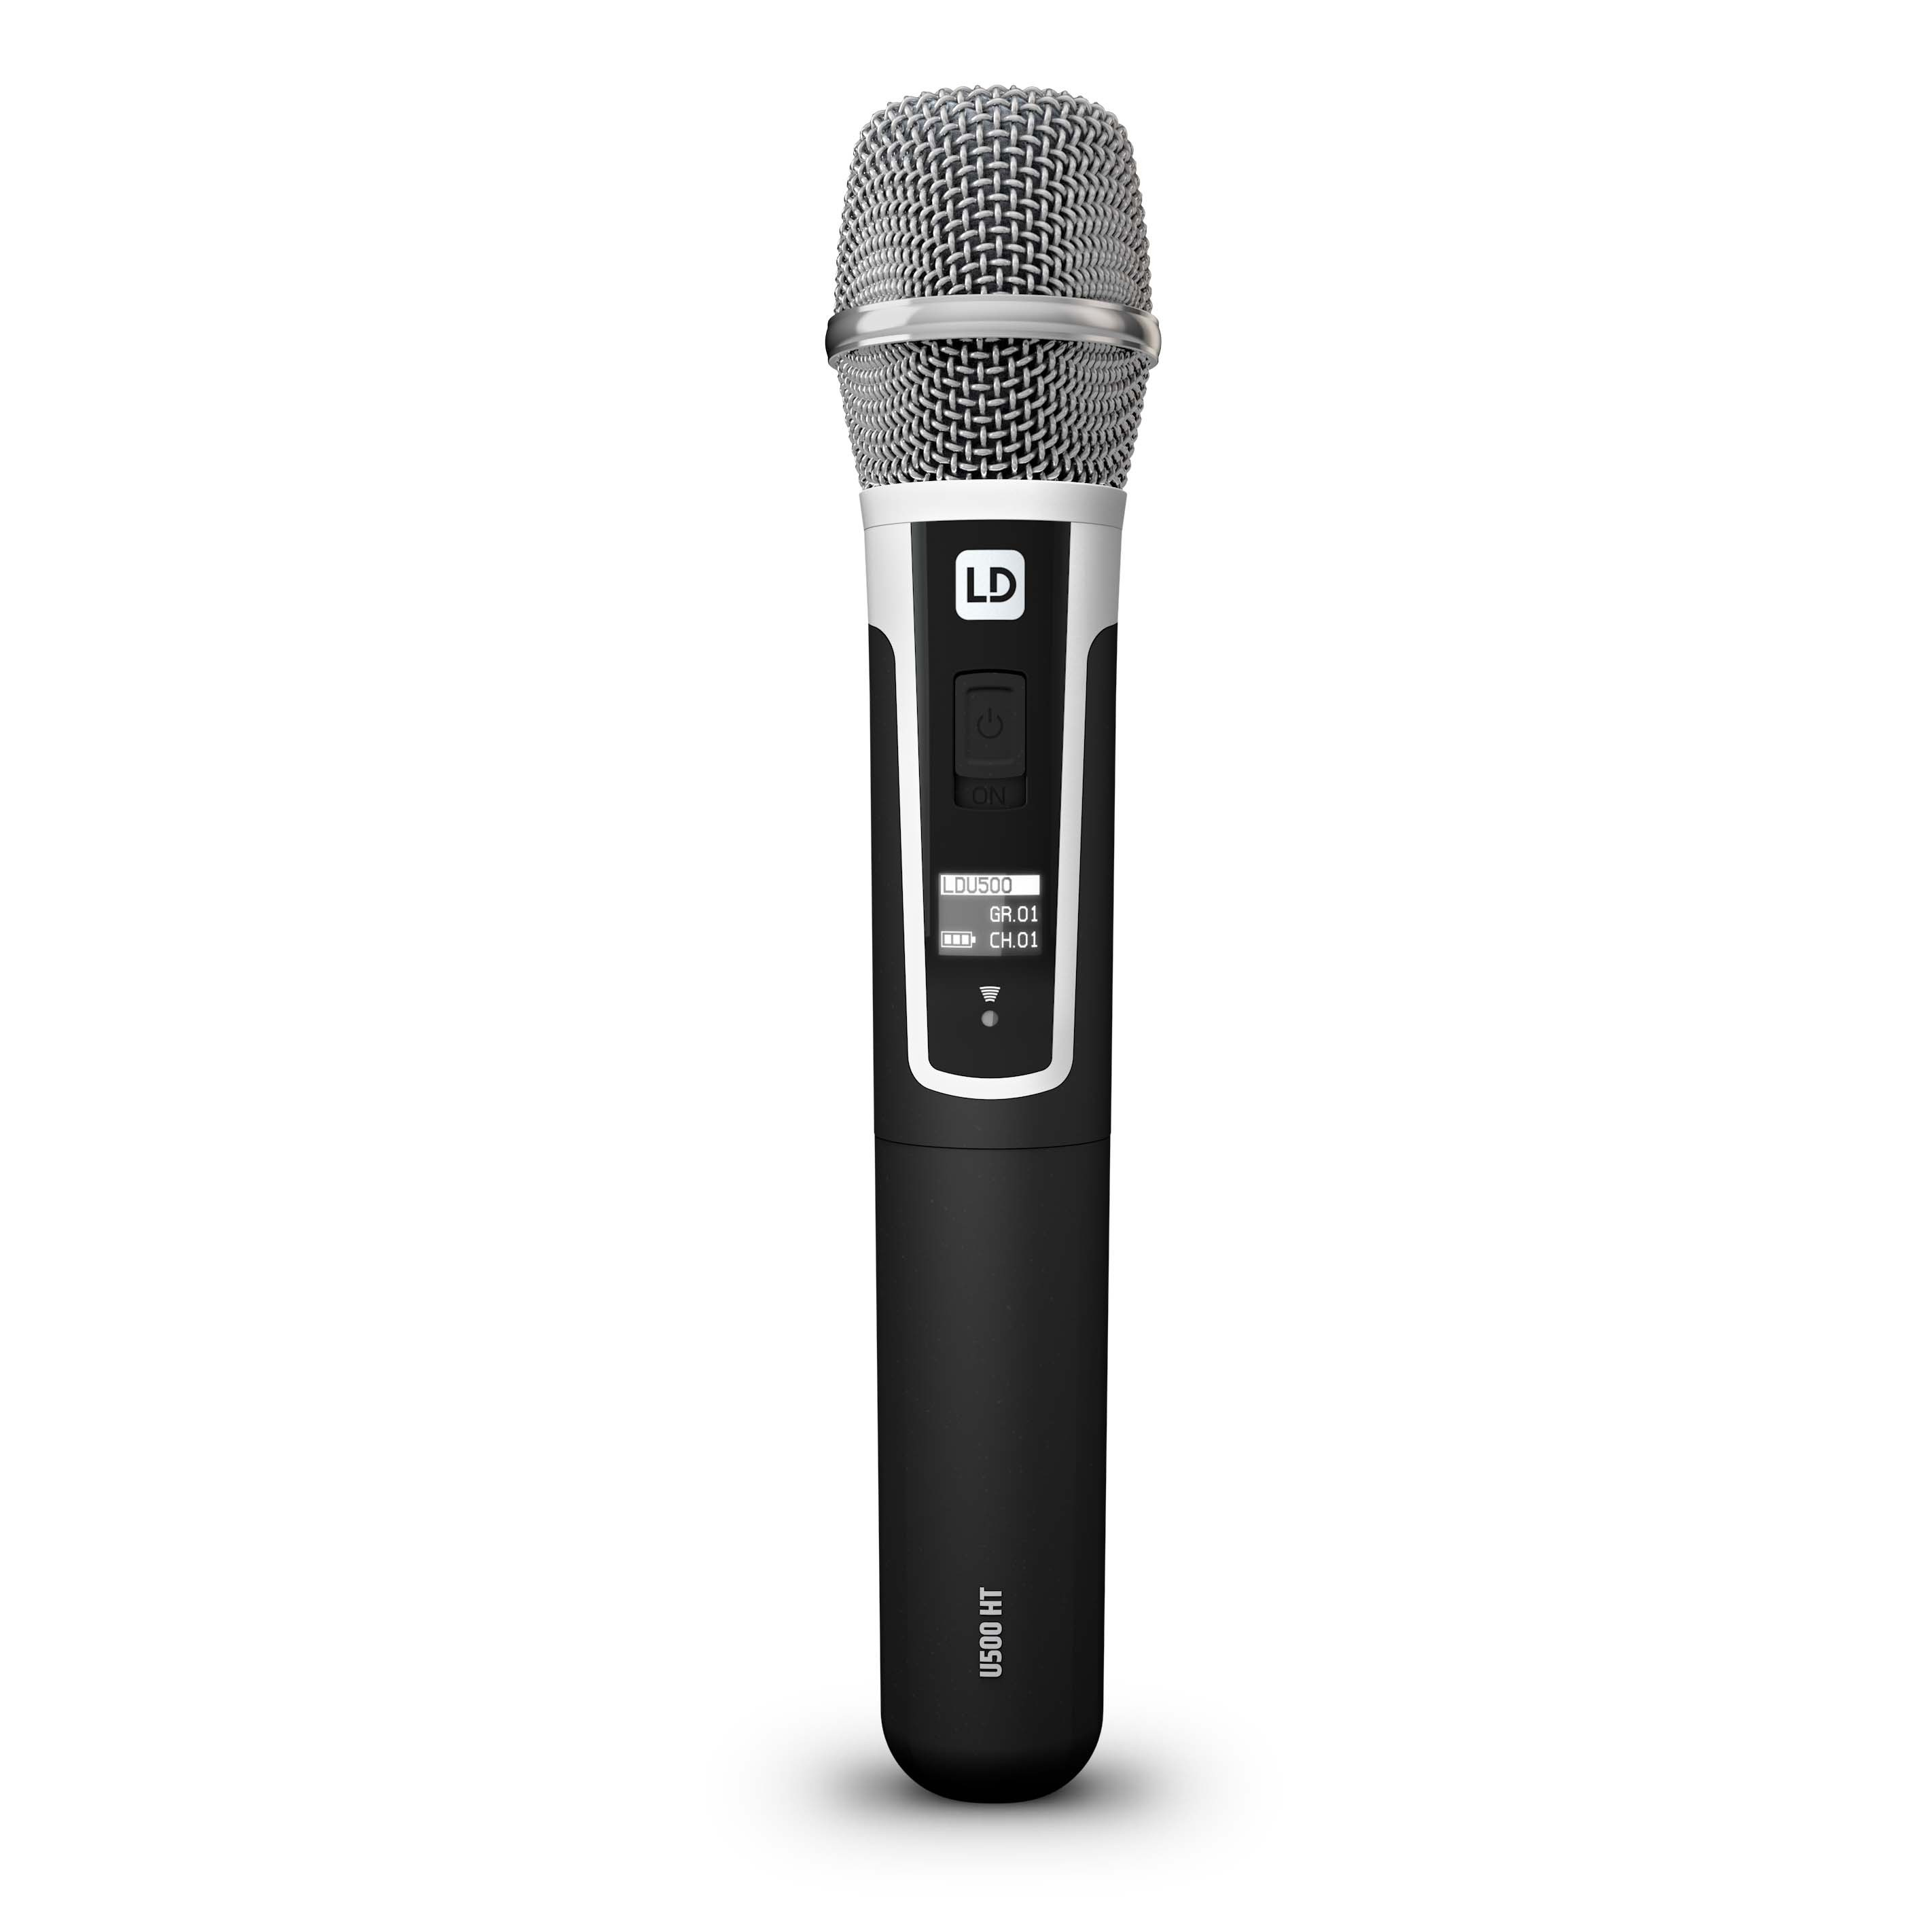 U506 HHC Wireless Microphone System with Condenser Handheld Microphone